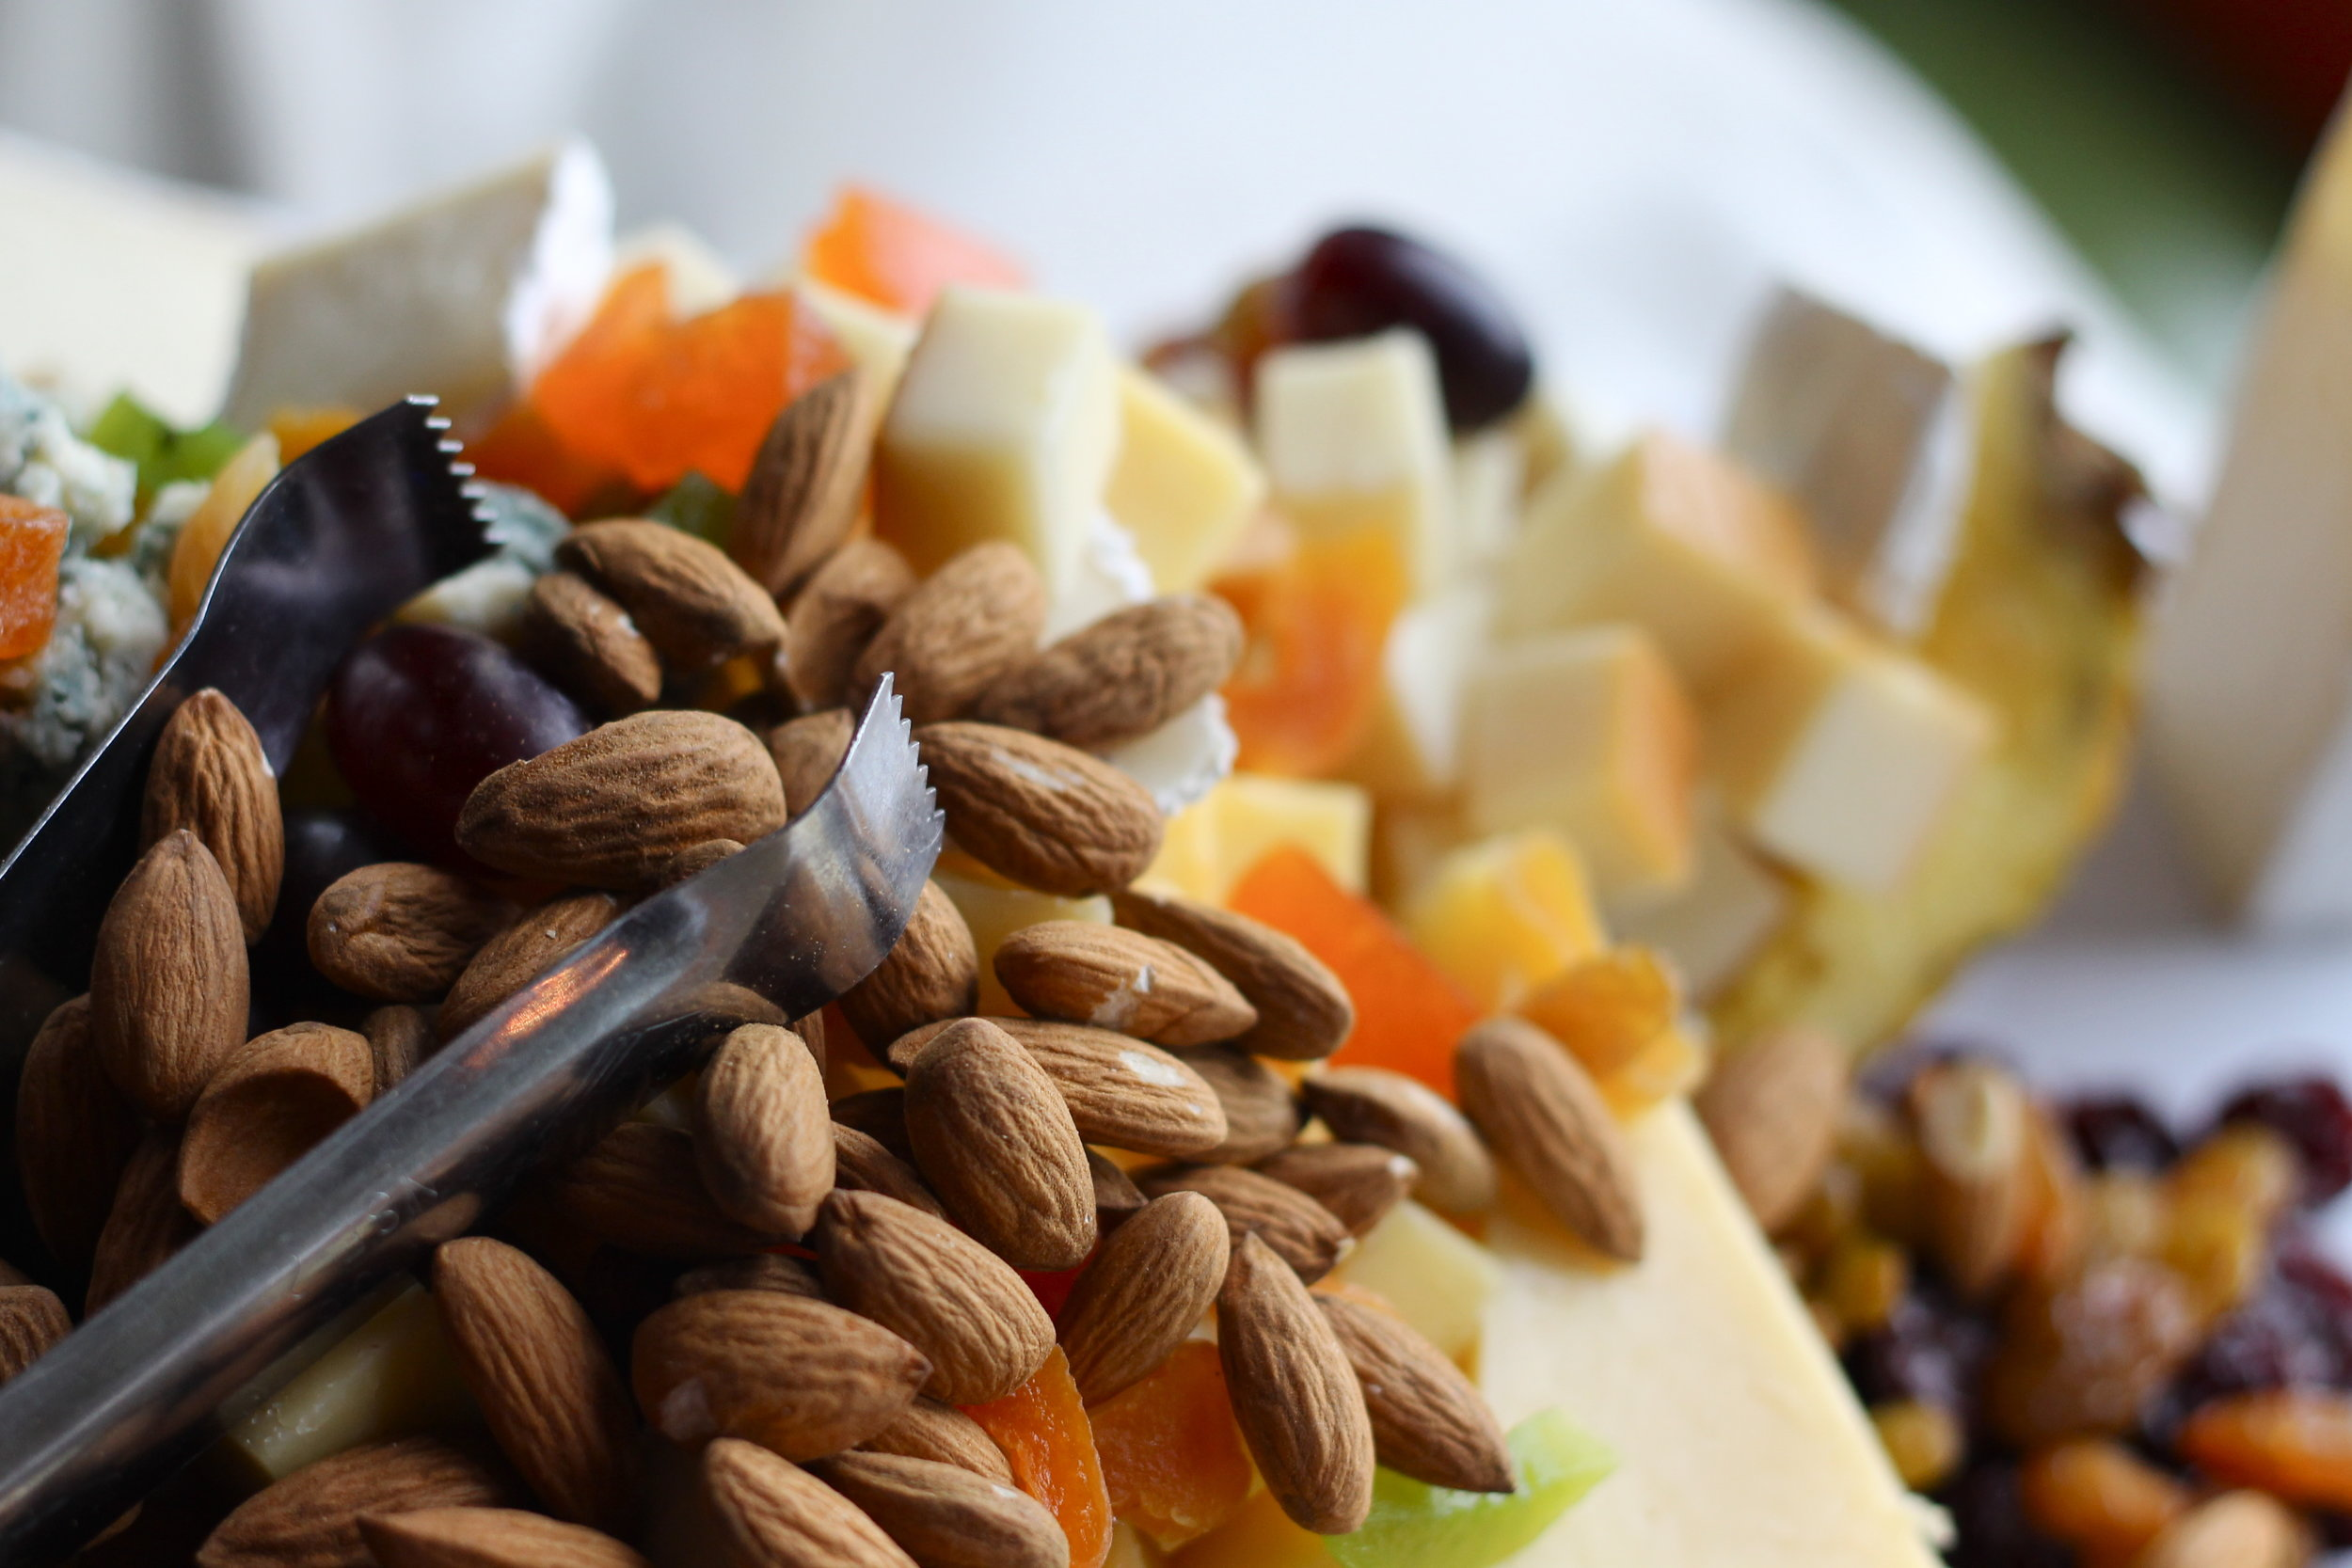 Skip the sweets altogether and offer a charcuterie board with a variety of cheeses, meats, fruits, and nuts.